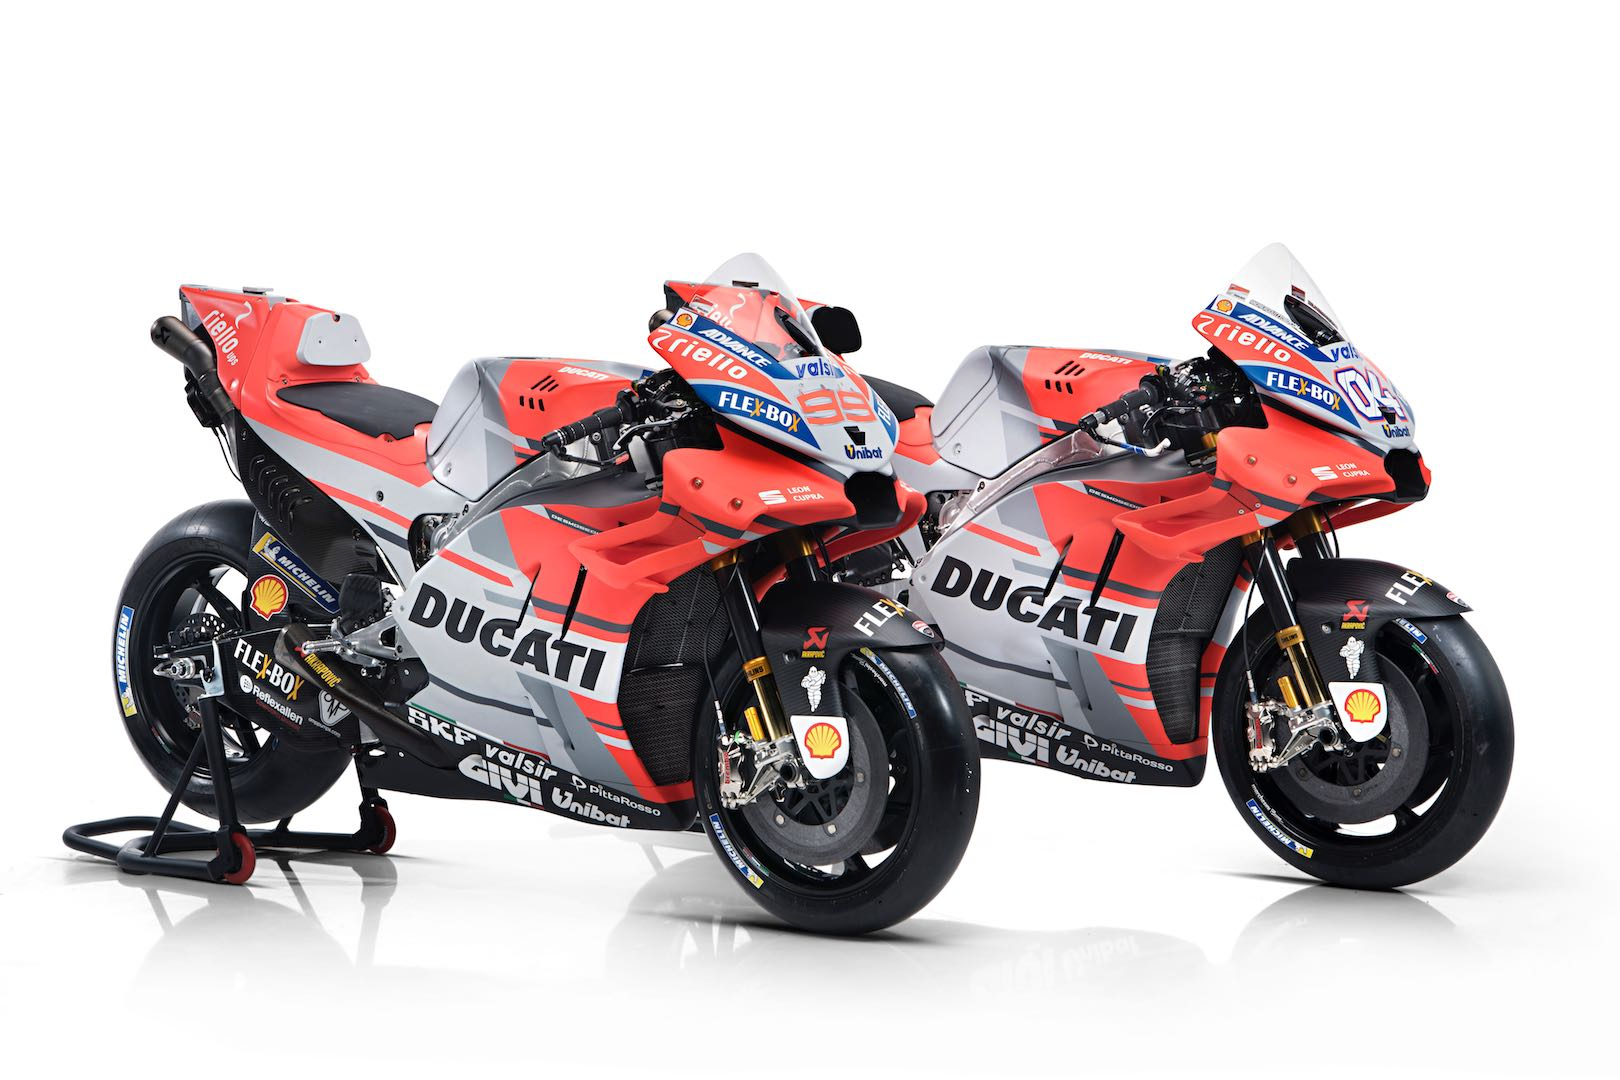 2018 Ducati MotoGP Bike & Riders Exposed: GP18, Dovizioso and Lorenzo